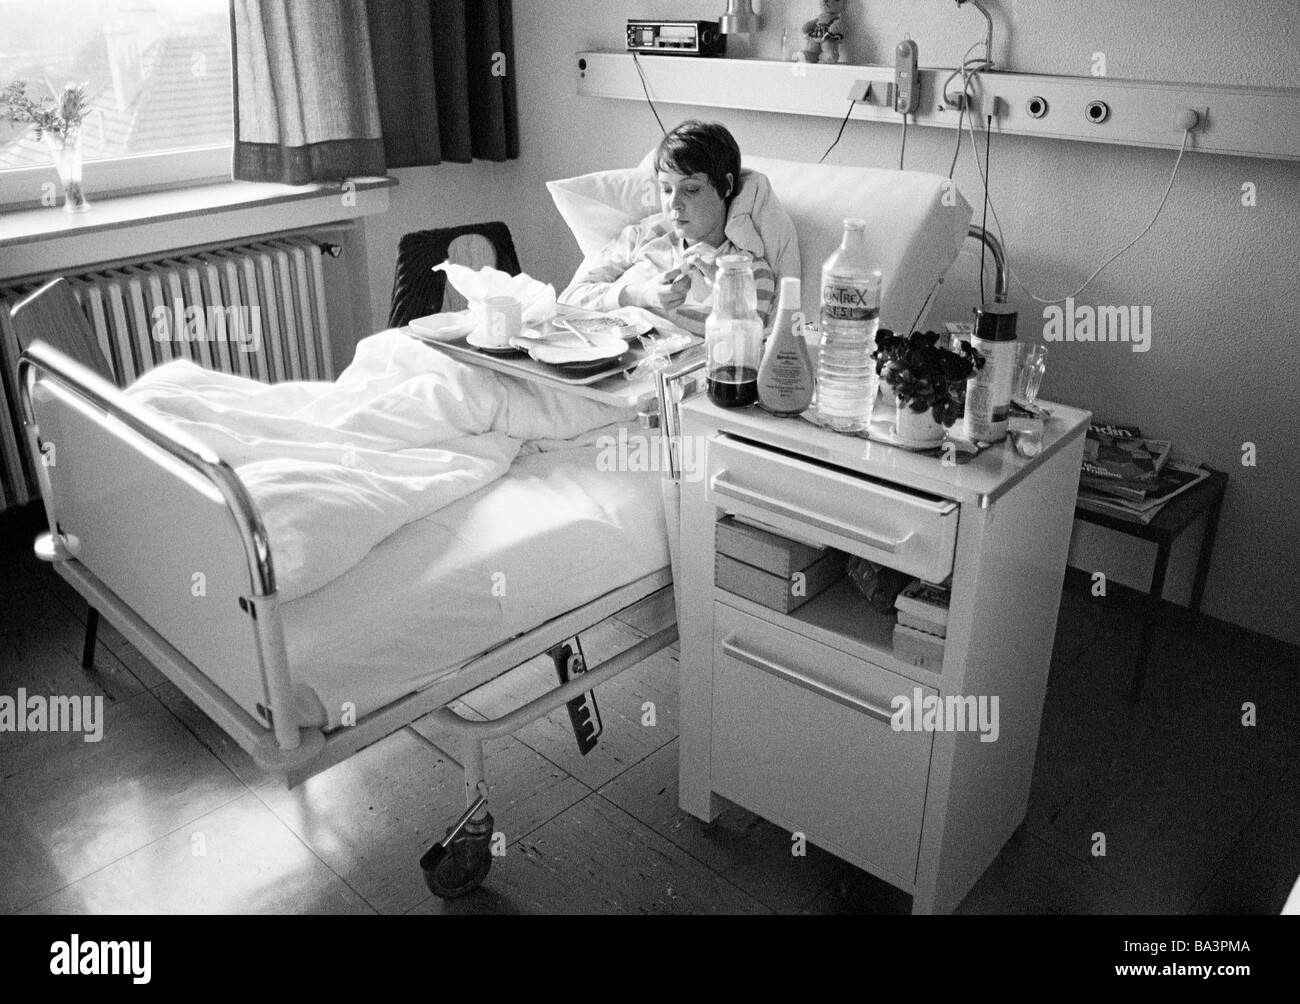 Eighties, black and white photo, people, health, young woman in a hospital, dinner in a sickbed, aged 25 to 30 years, - Stock Image